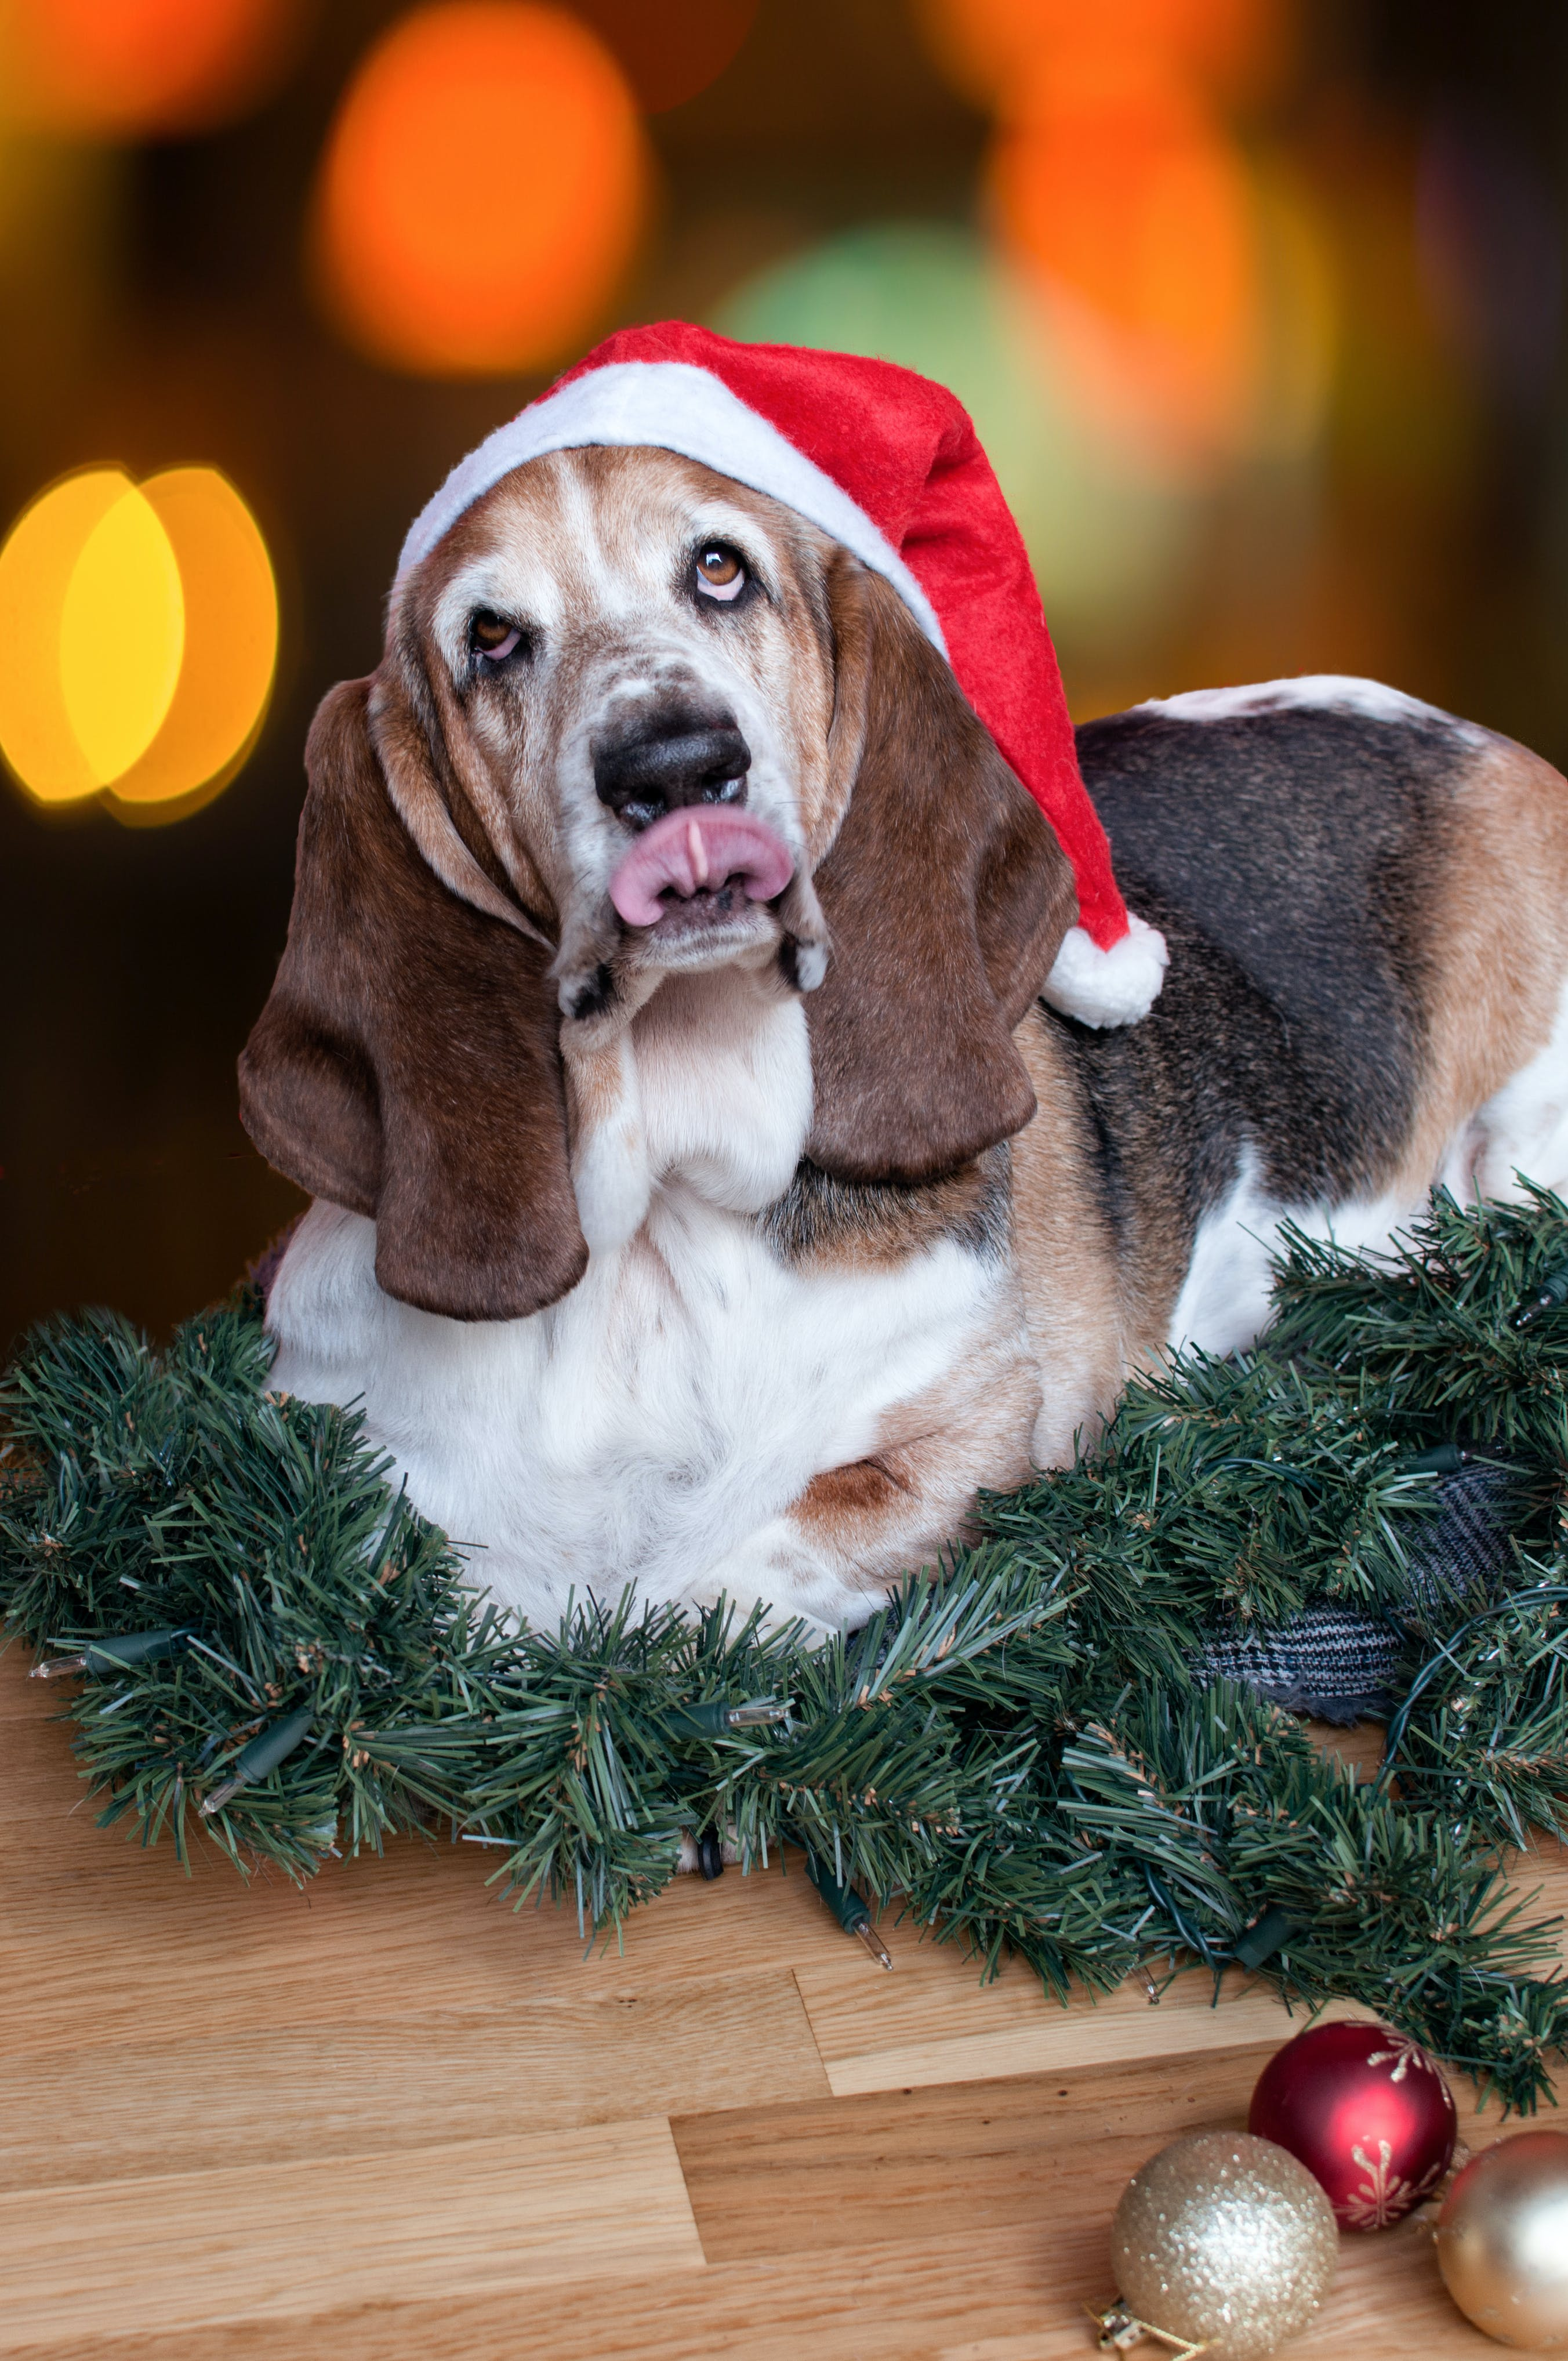 Miranda's costume story for 10 Dog Halloween Costume Ideas for Basset Hounds